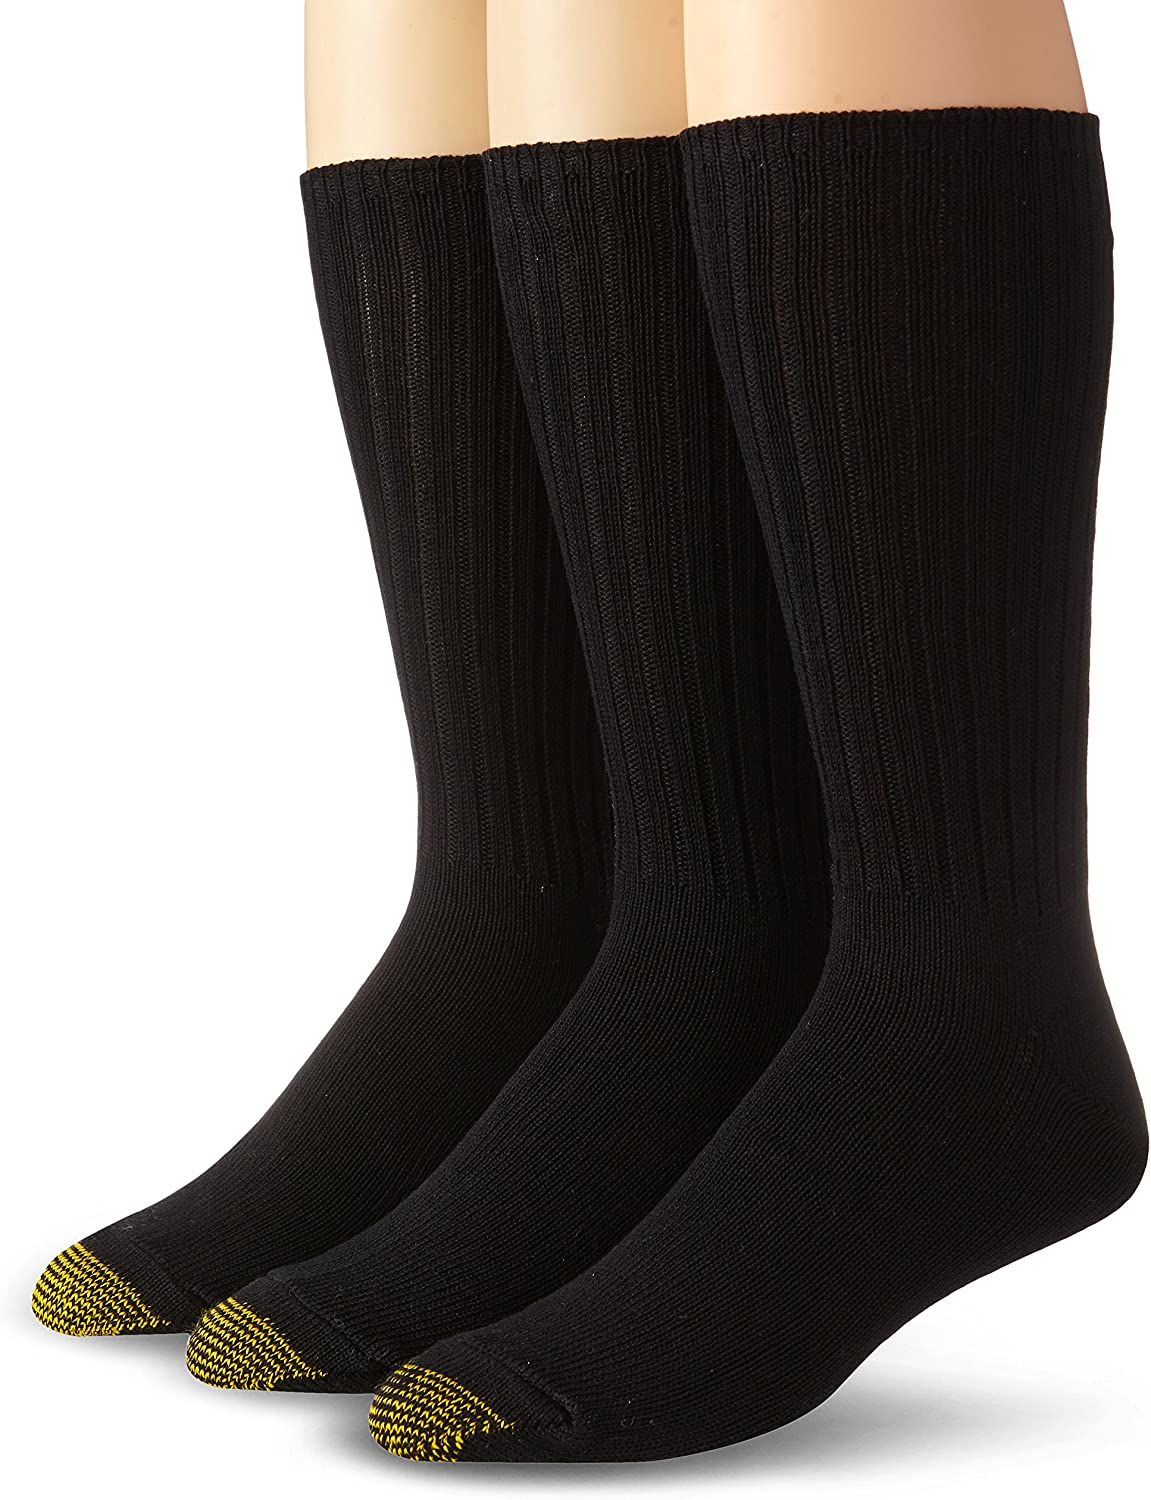 Gold Toe Men's Cotton Fluffies Crew Socks, 3 Pairs